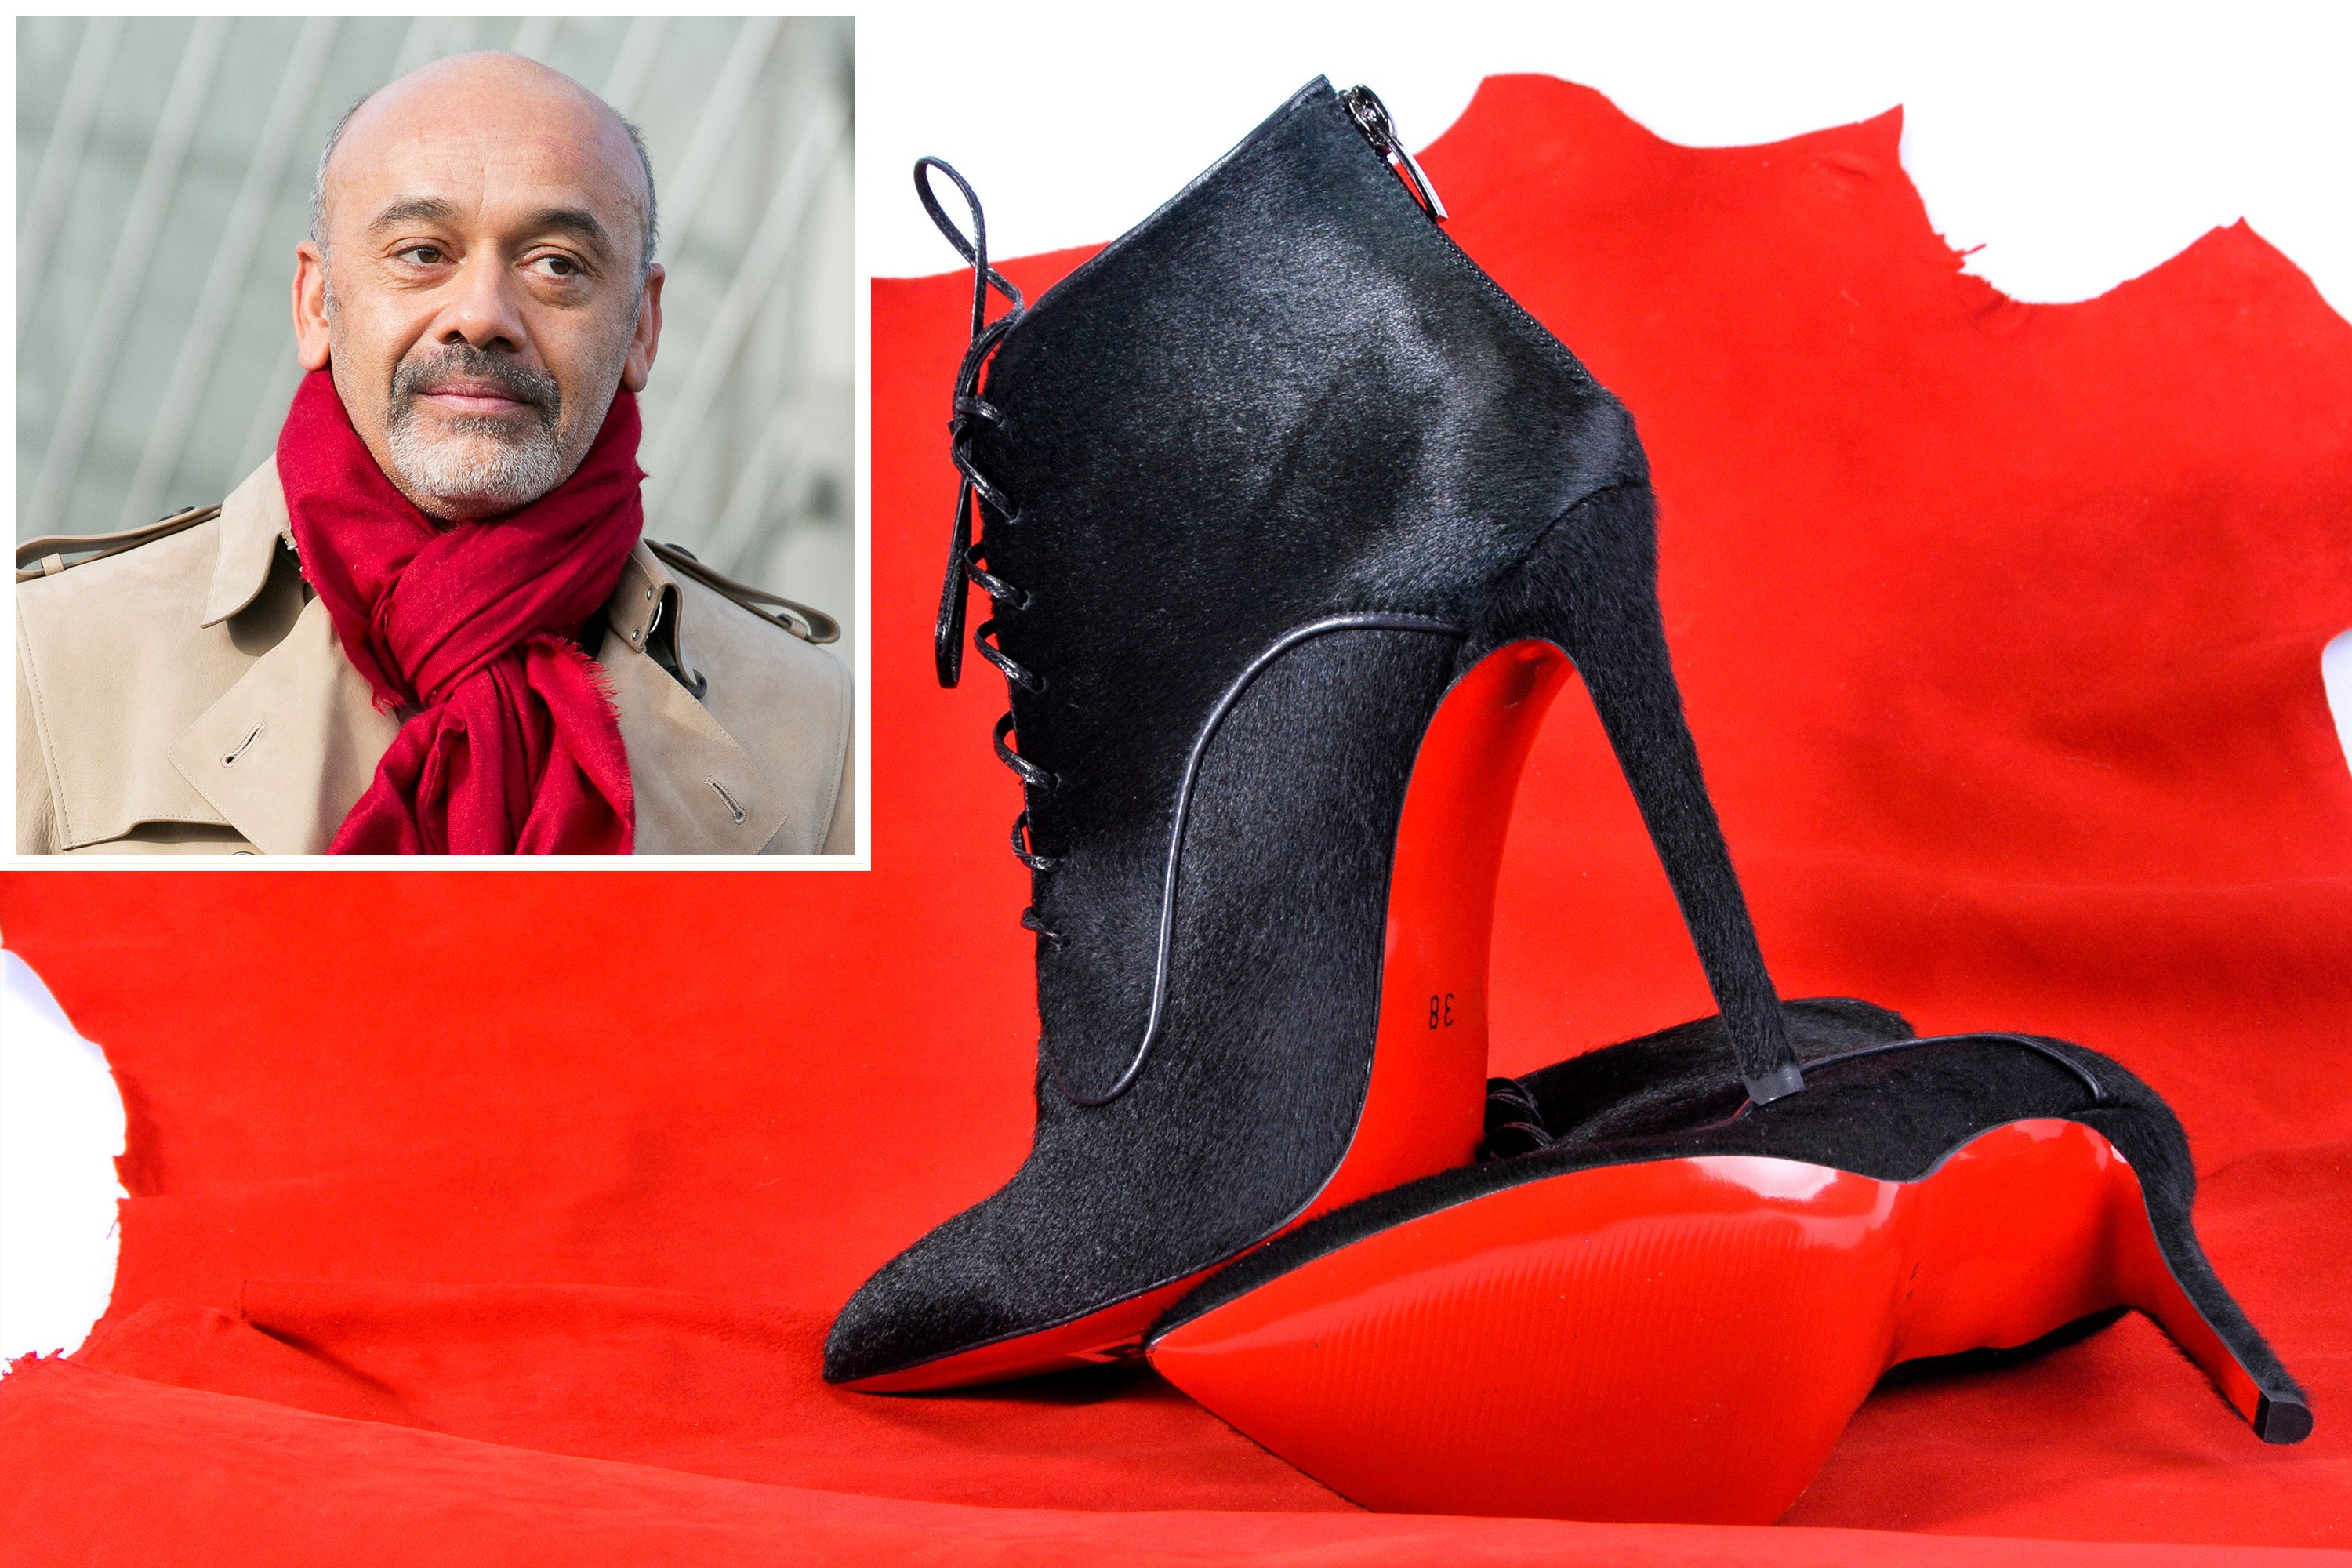 Christian Louboutin scrambles to trademark his red-soled shoes